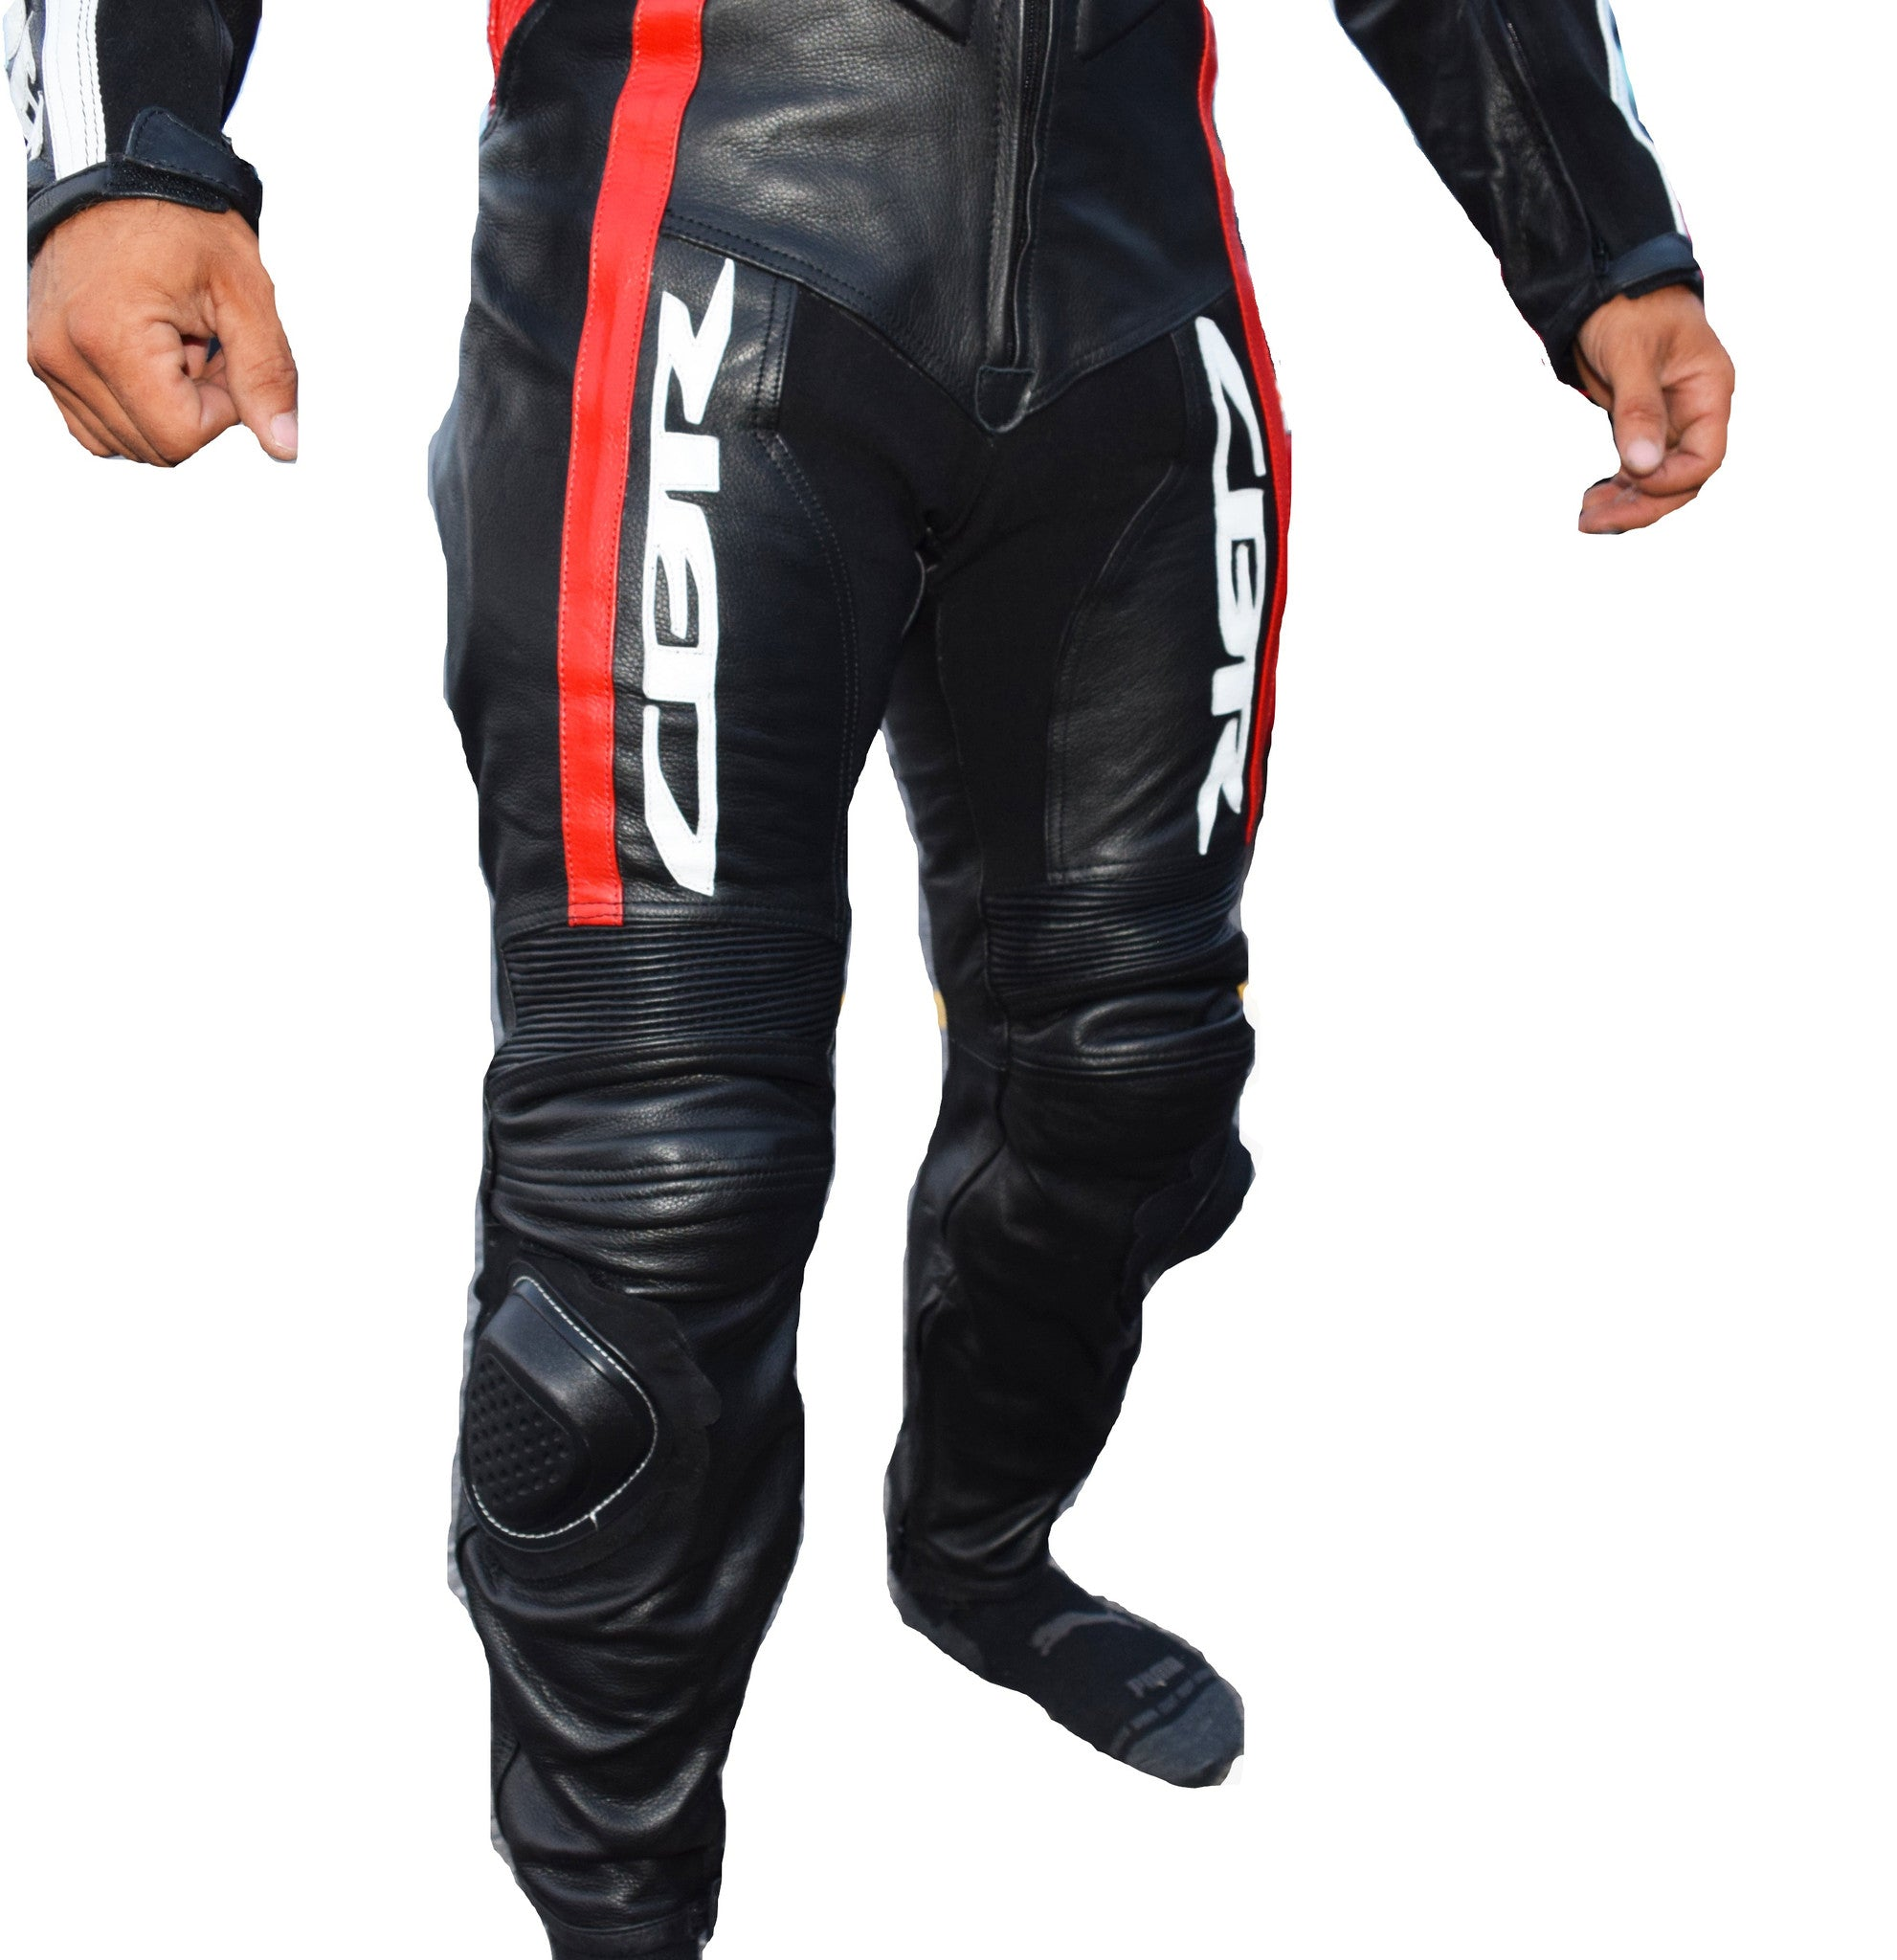 Canadian honda motorcycle leather suit - Lusso Leather - 5